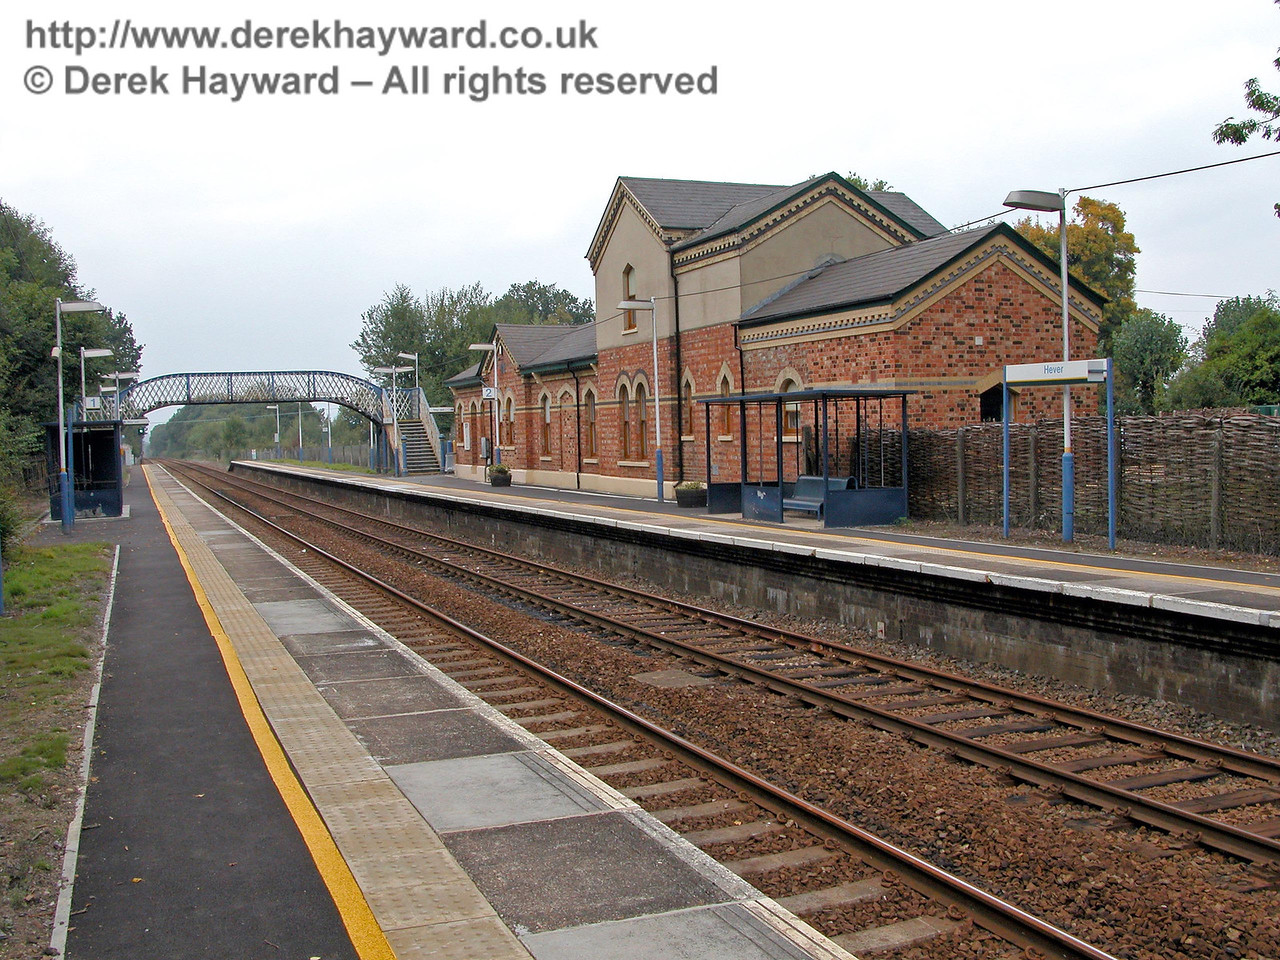 Approximately the same view of the Hever station building taken five years later. 18.09.2003